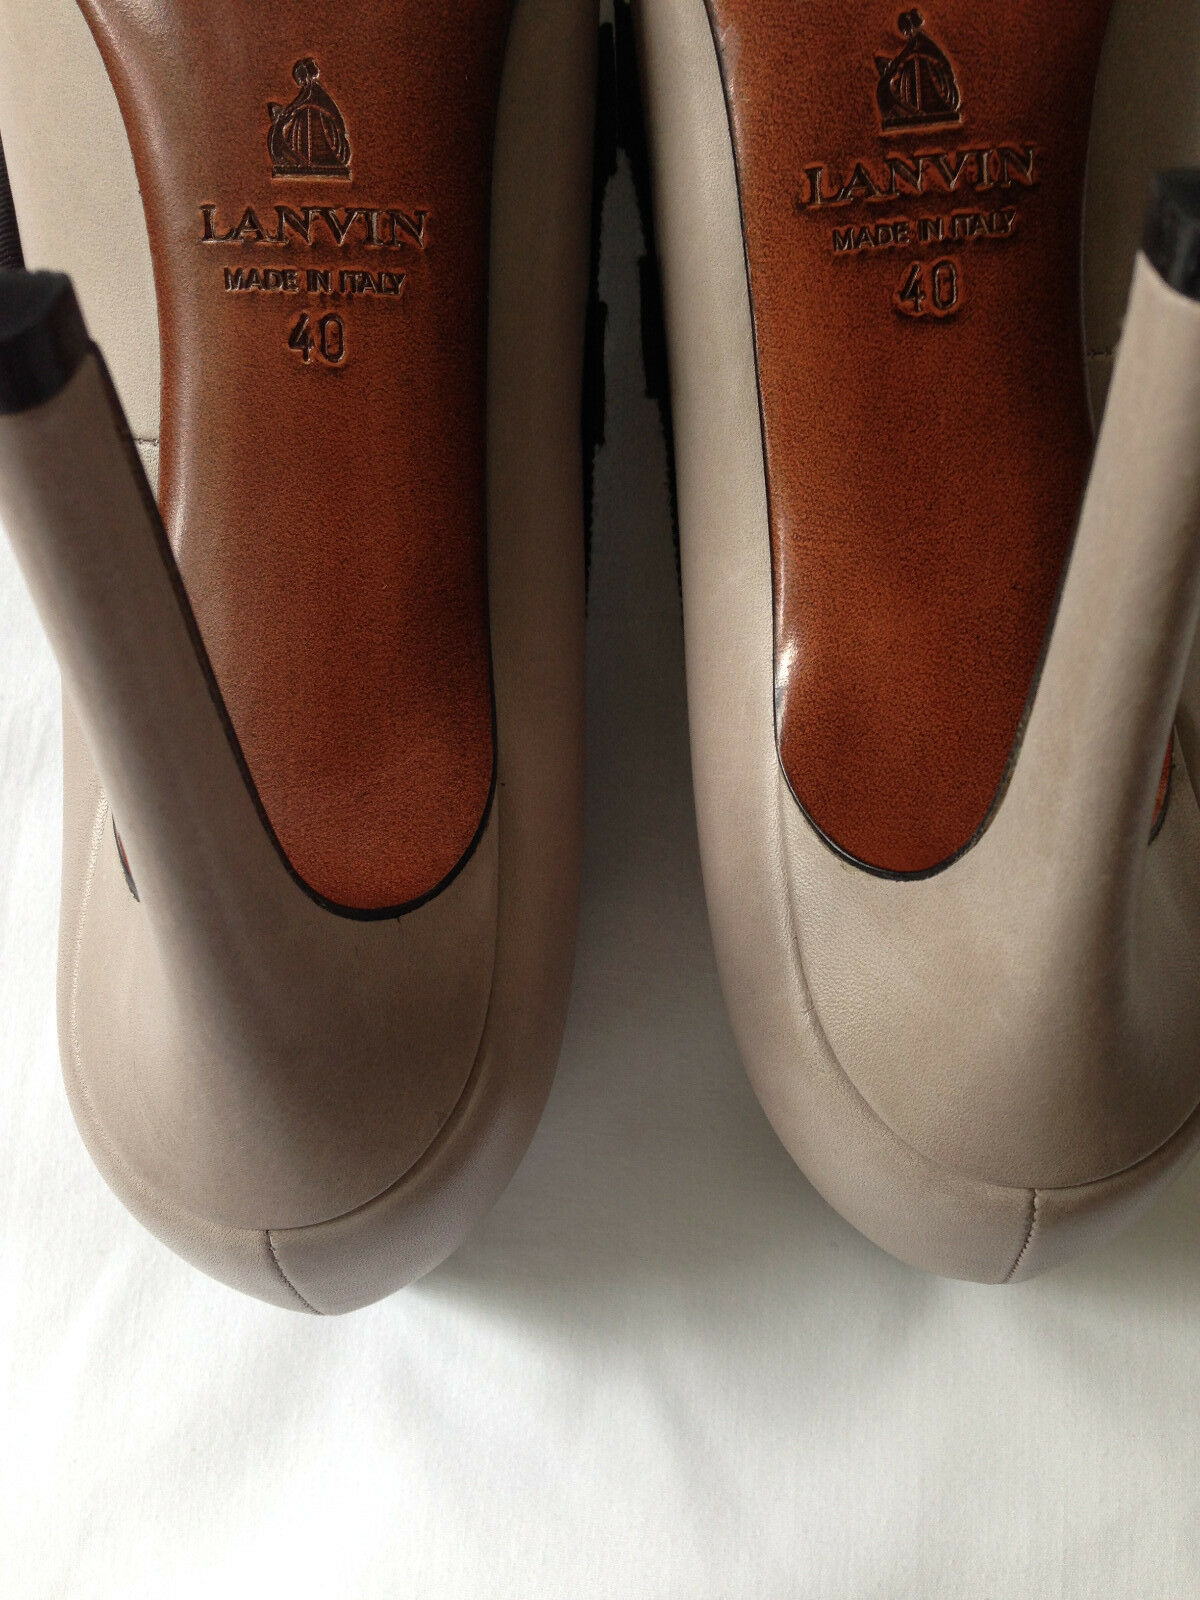 LANVIN LEATHER SHOE WITH RIBBON TRIM SIZE 40 40 40 MADE IN ITALY   Retail  690 9e1722